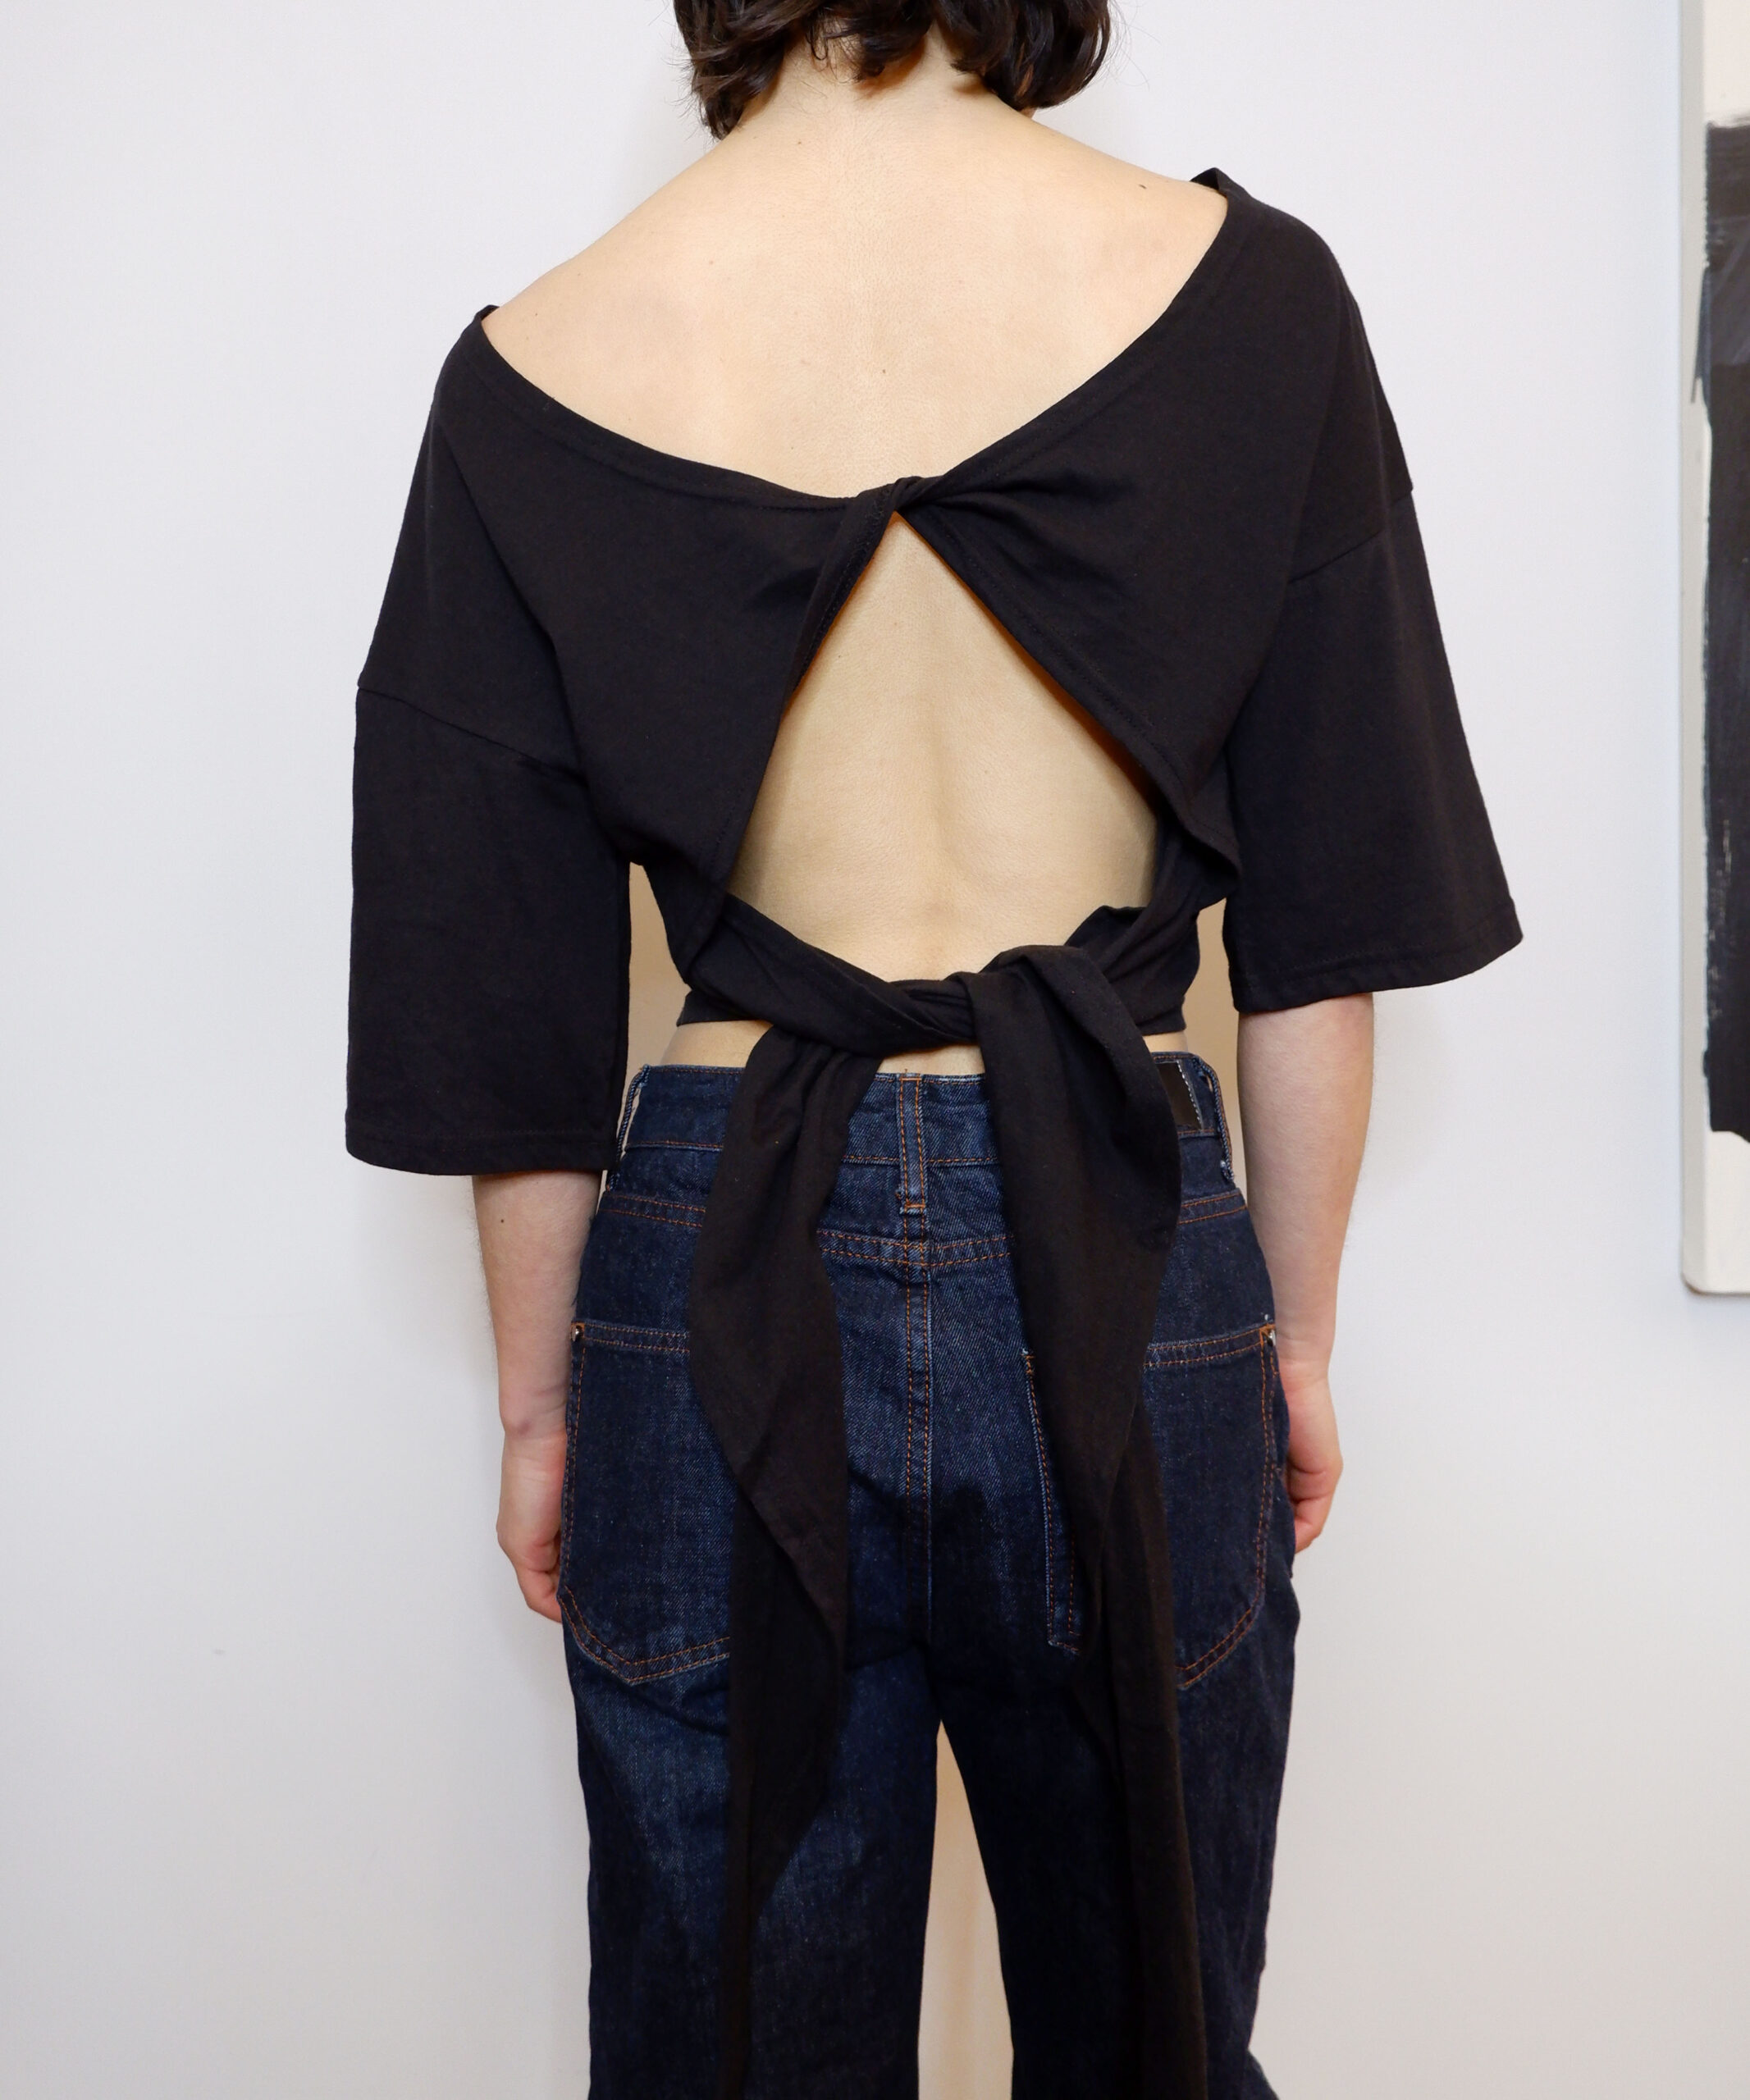 Open-back ribbon tie cropped t-shirt in black   The Dallant   Korean fashion online shopping site